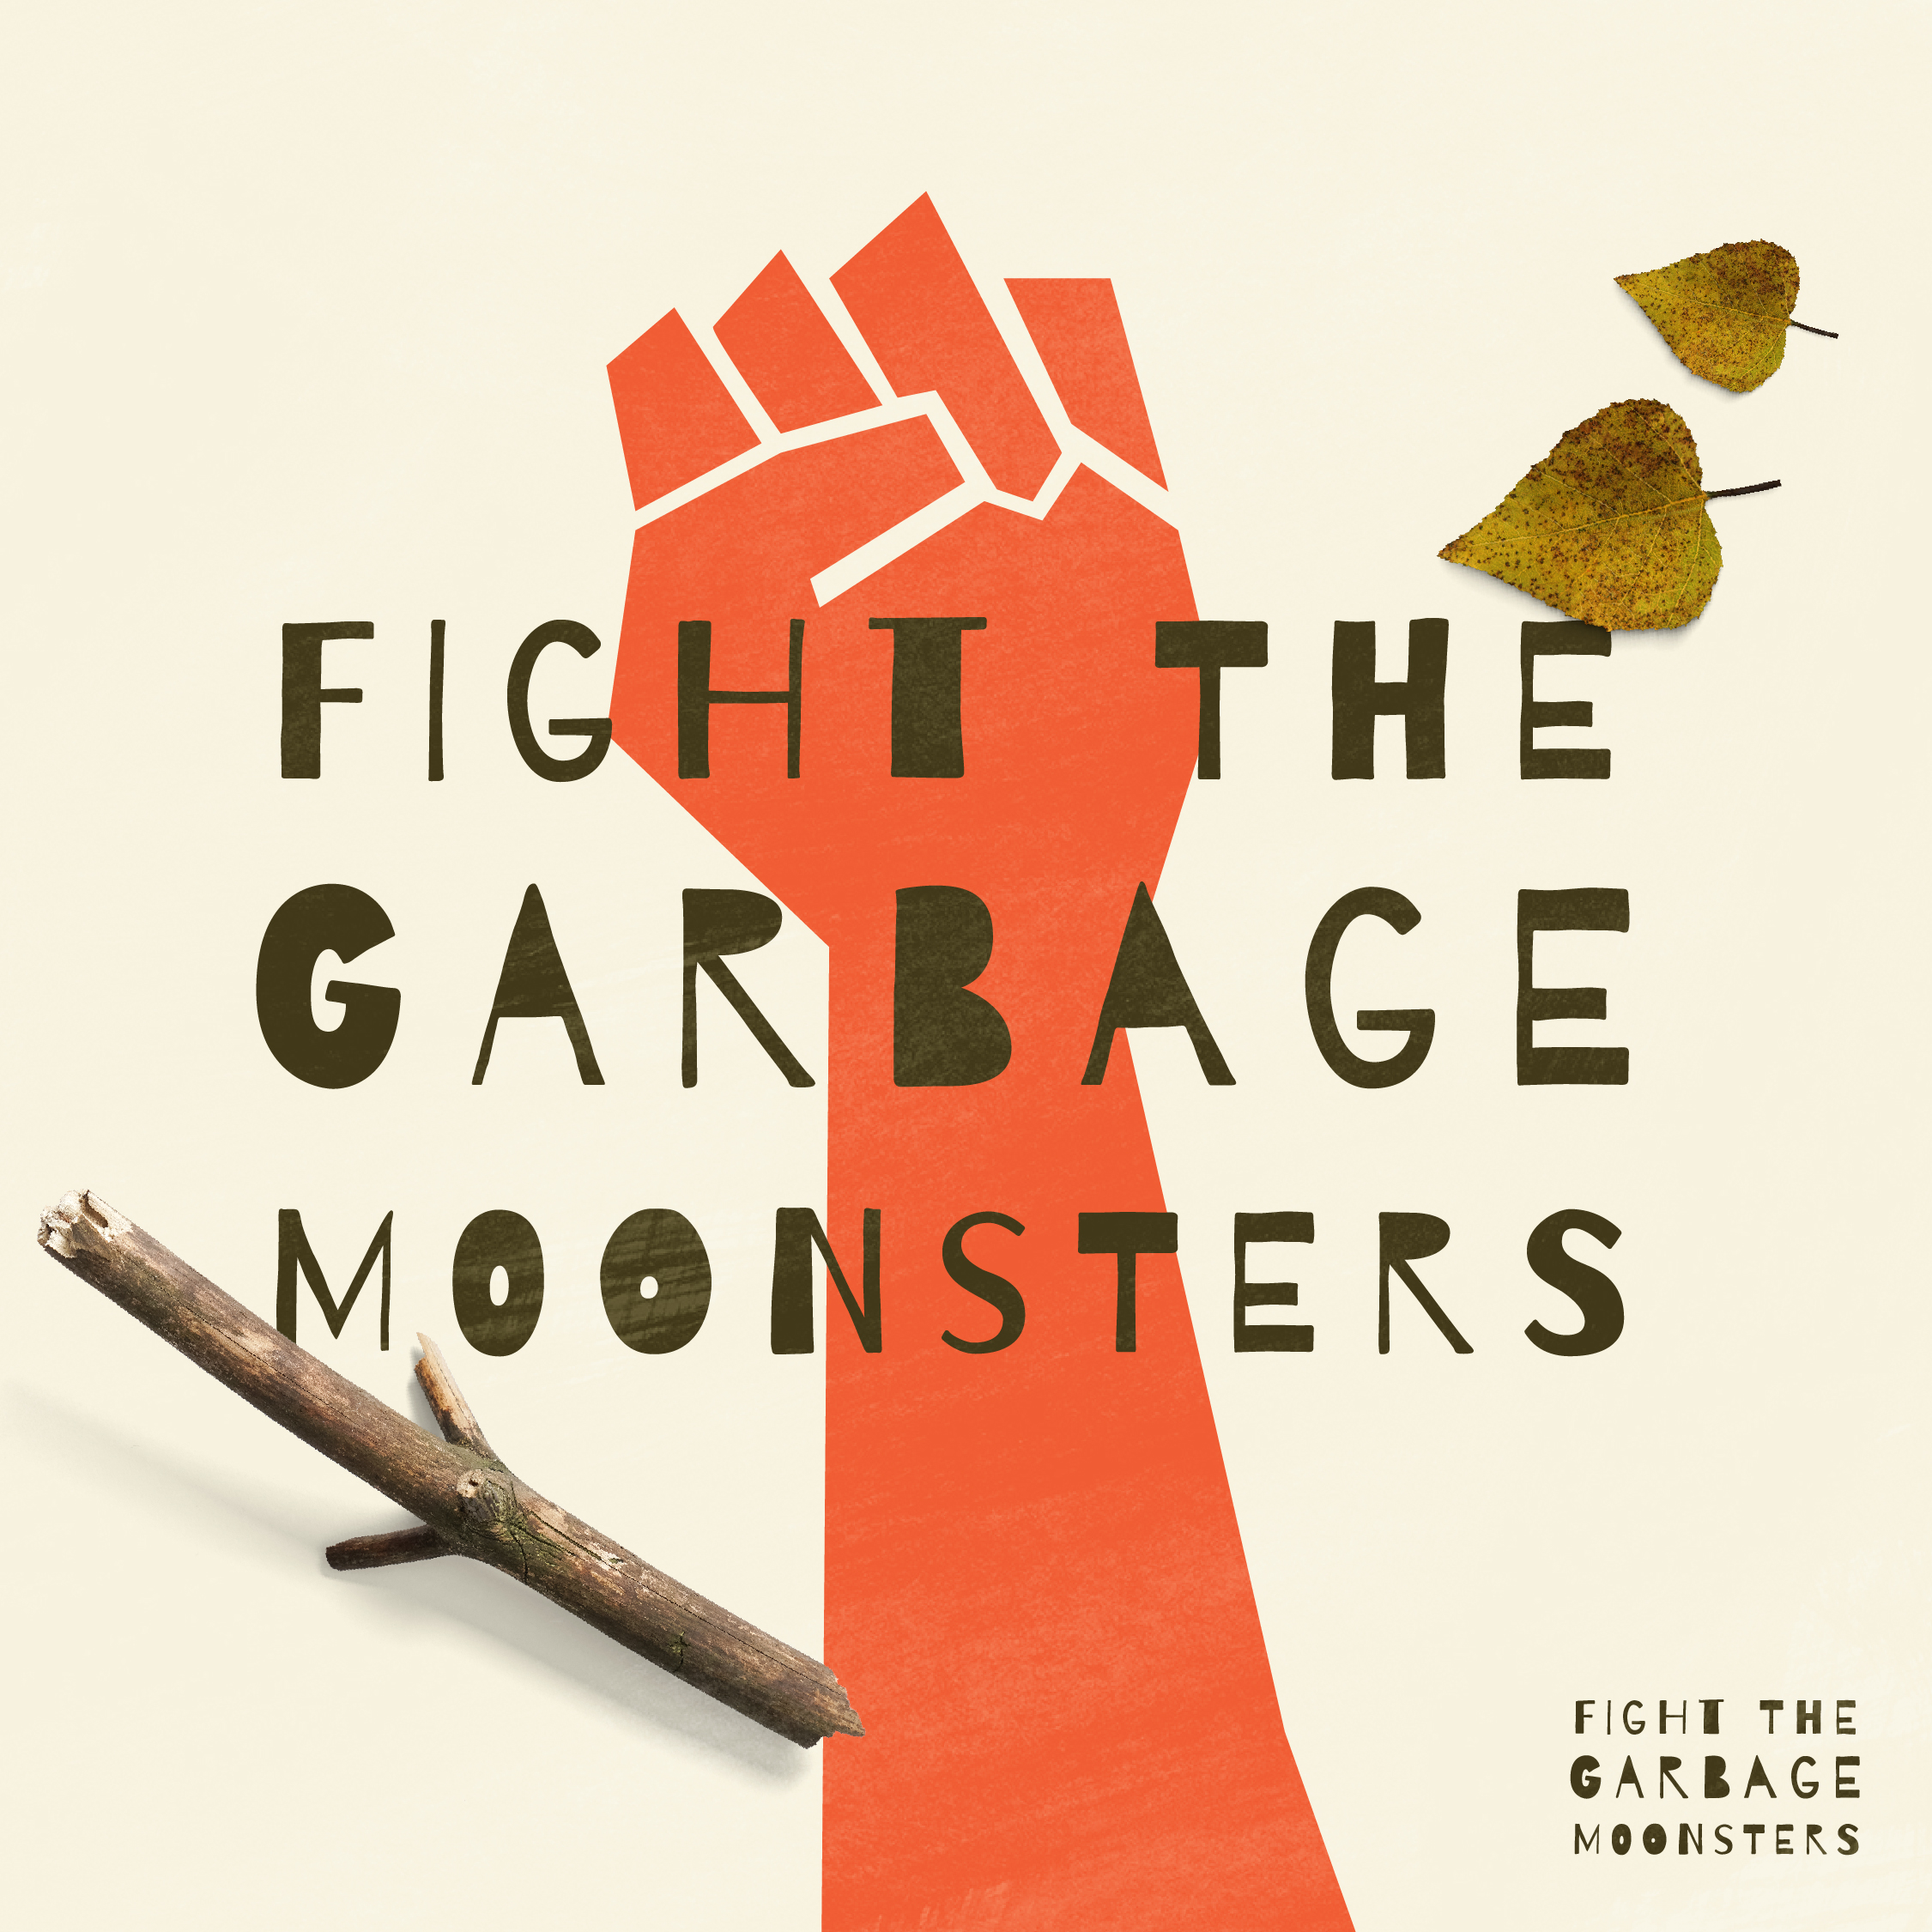 Logotipo Fight the garbage moonsters